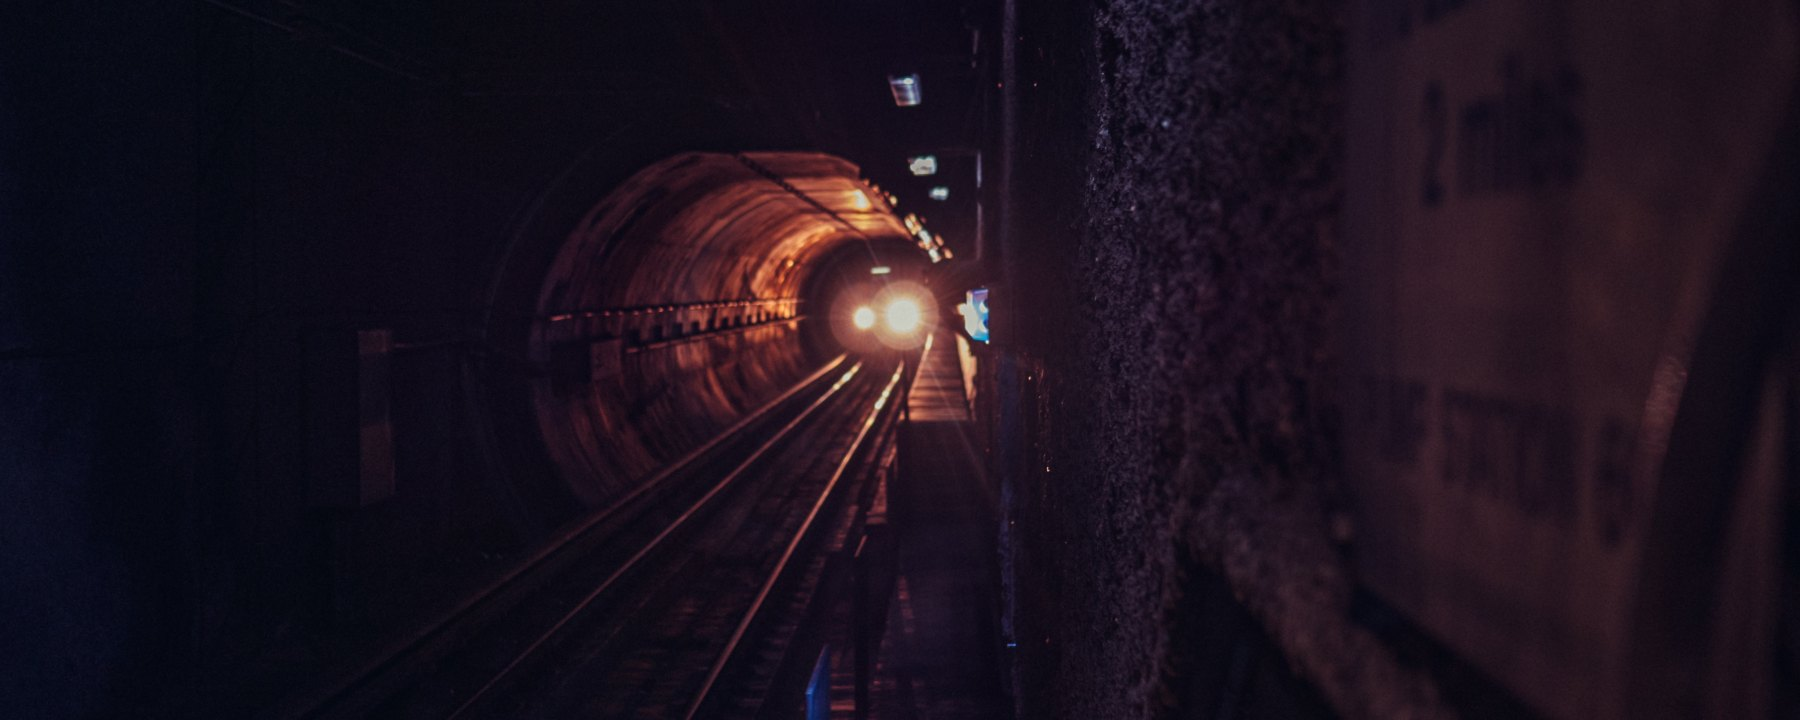 Subway, train, oncoming train, tunnel, headlight